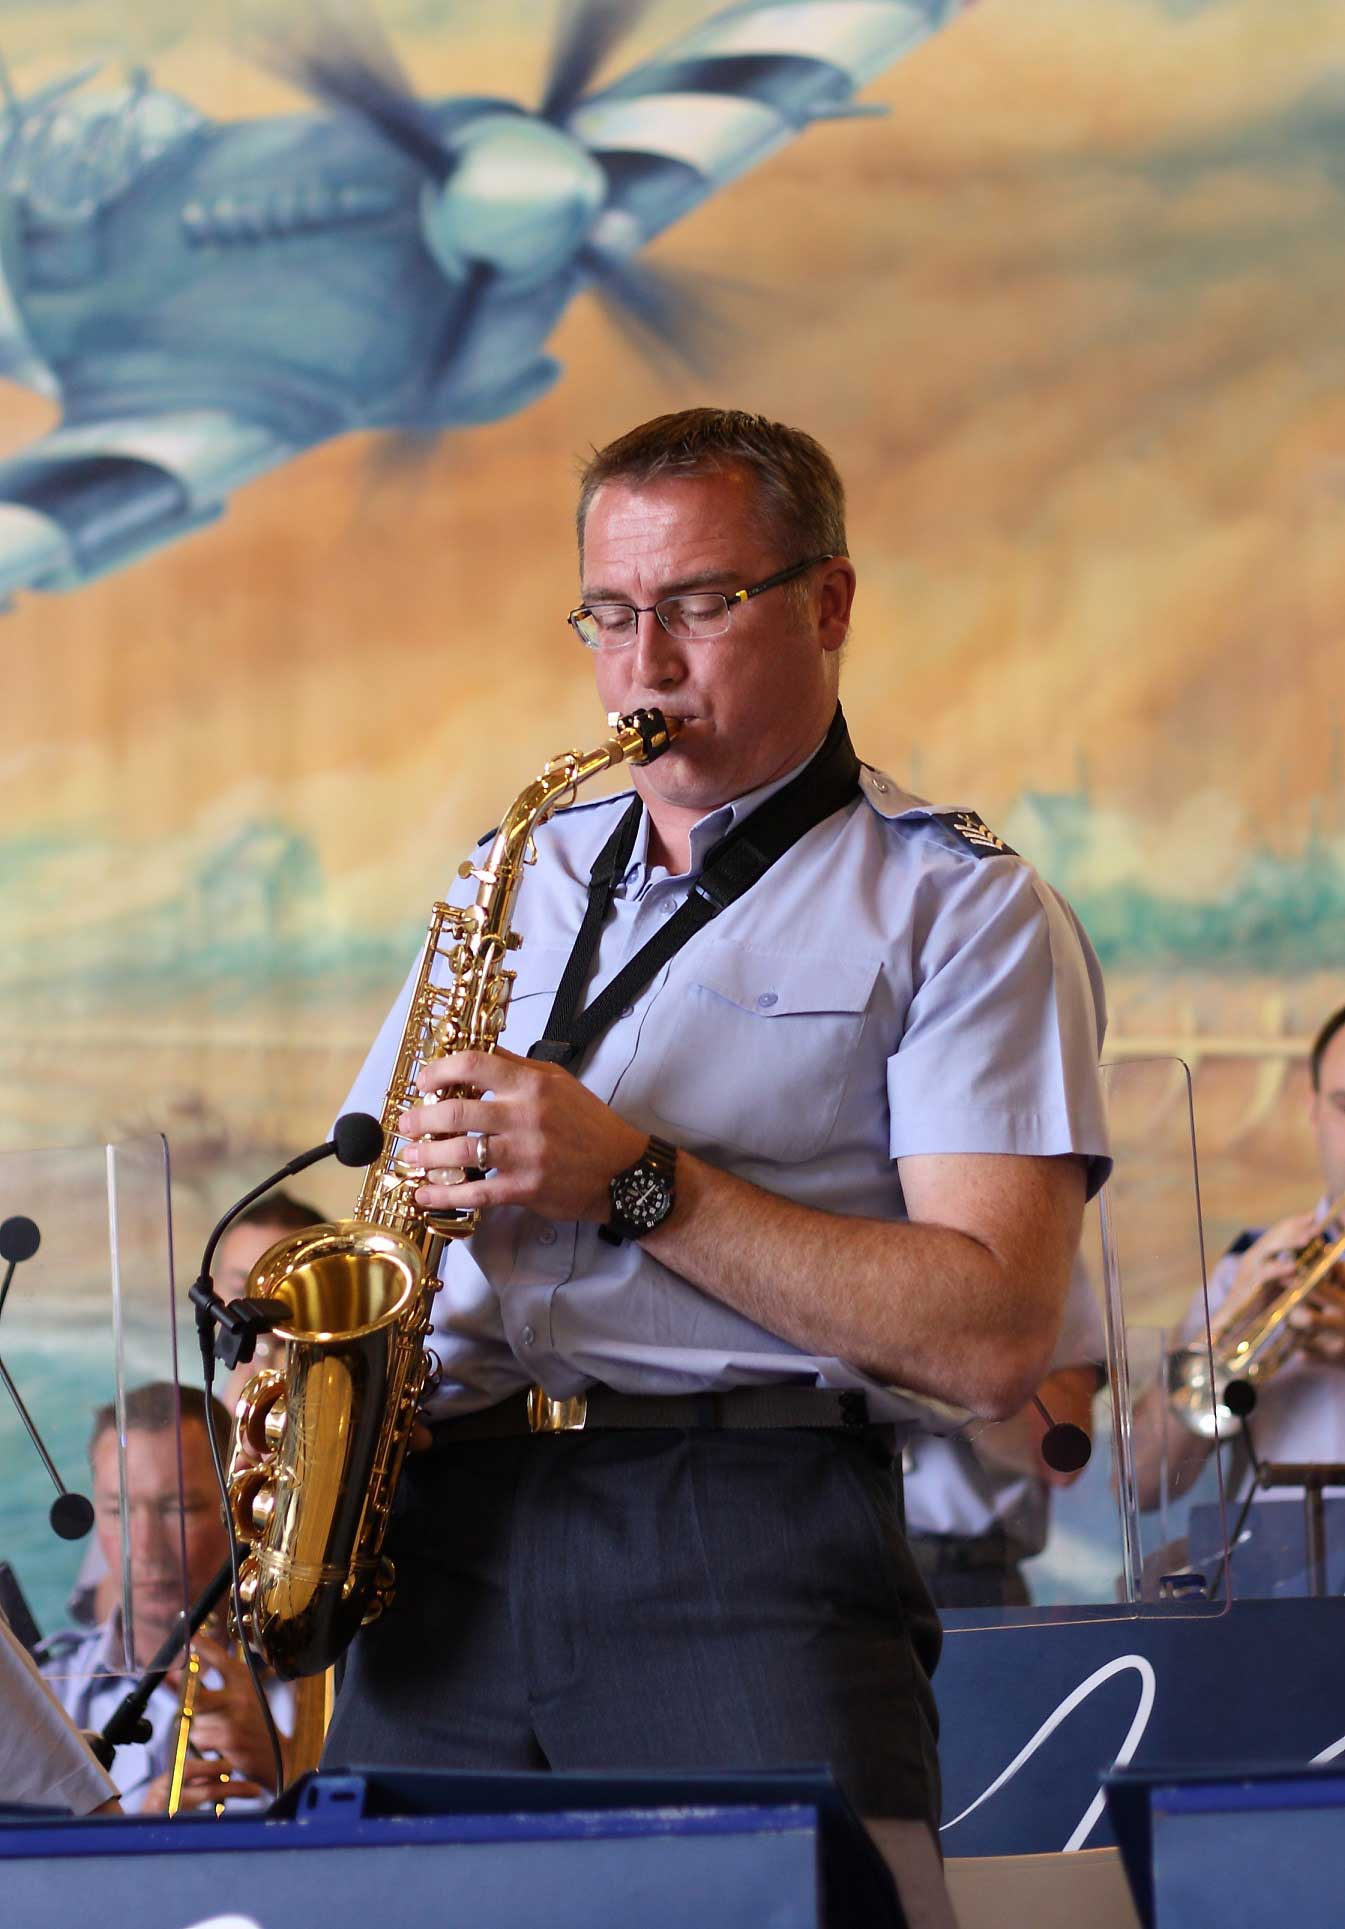 Saxophonist Chief Technician Tony Giles